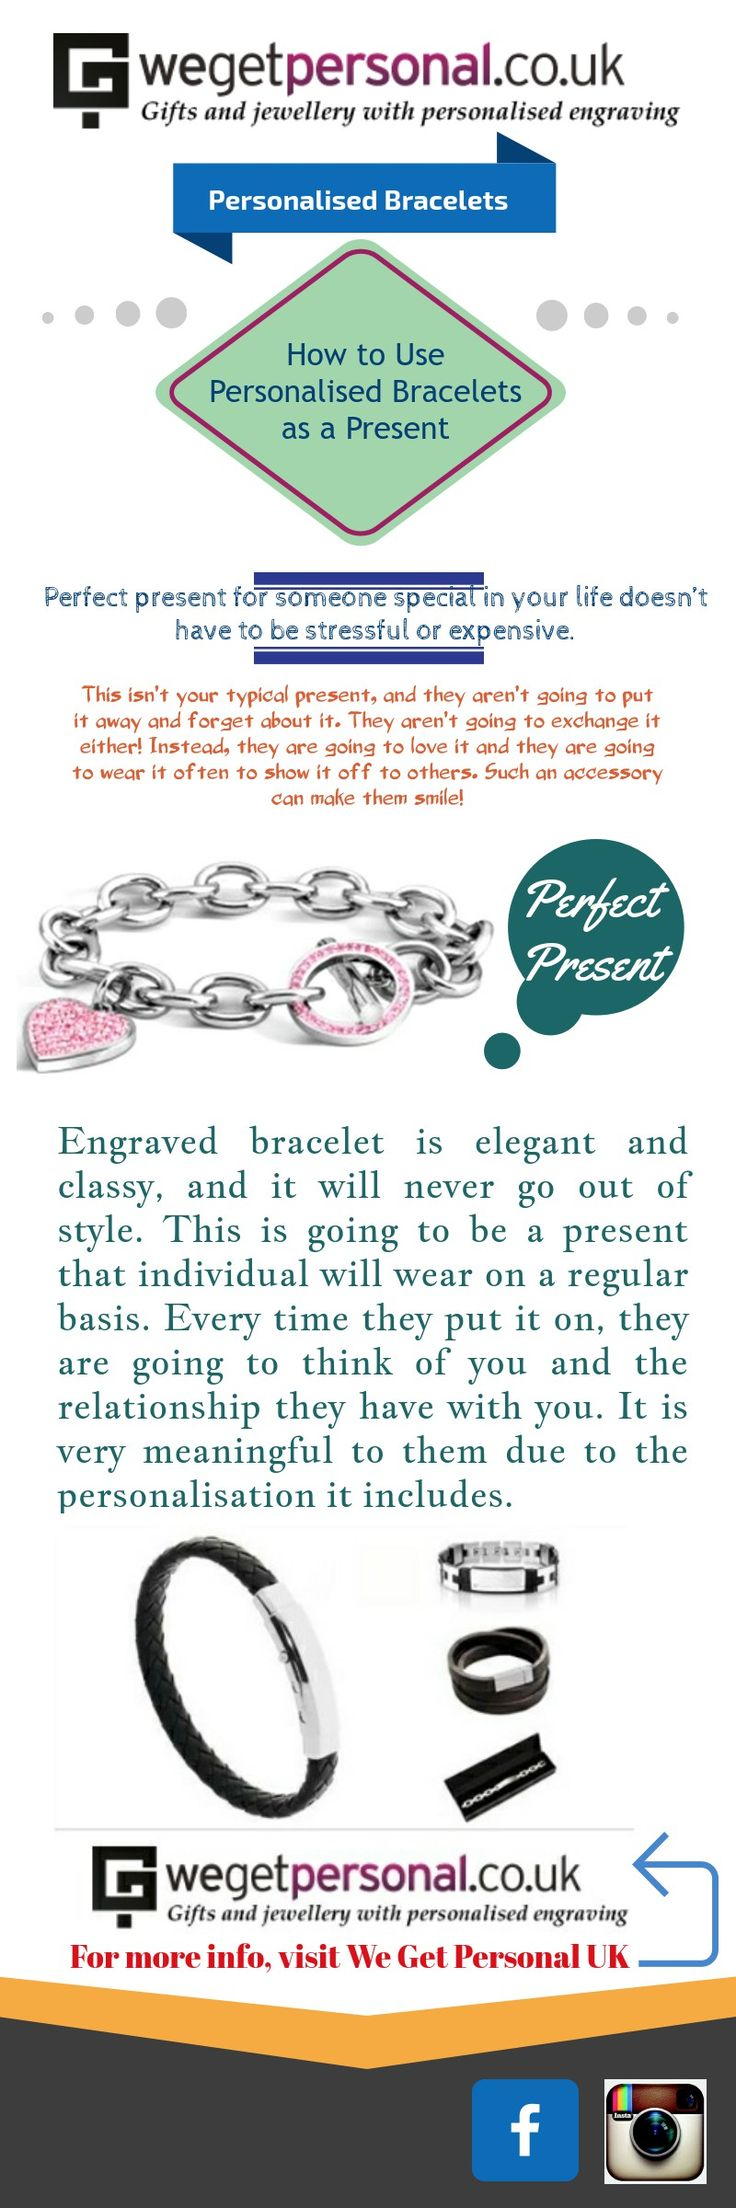 Looking for the perfect present for someone special? Purchase Engraved bracelet from We get Personal UK, it is elegant and classy gift and it will never go out of style. #personalisedbracelet #engravedbracelet